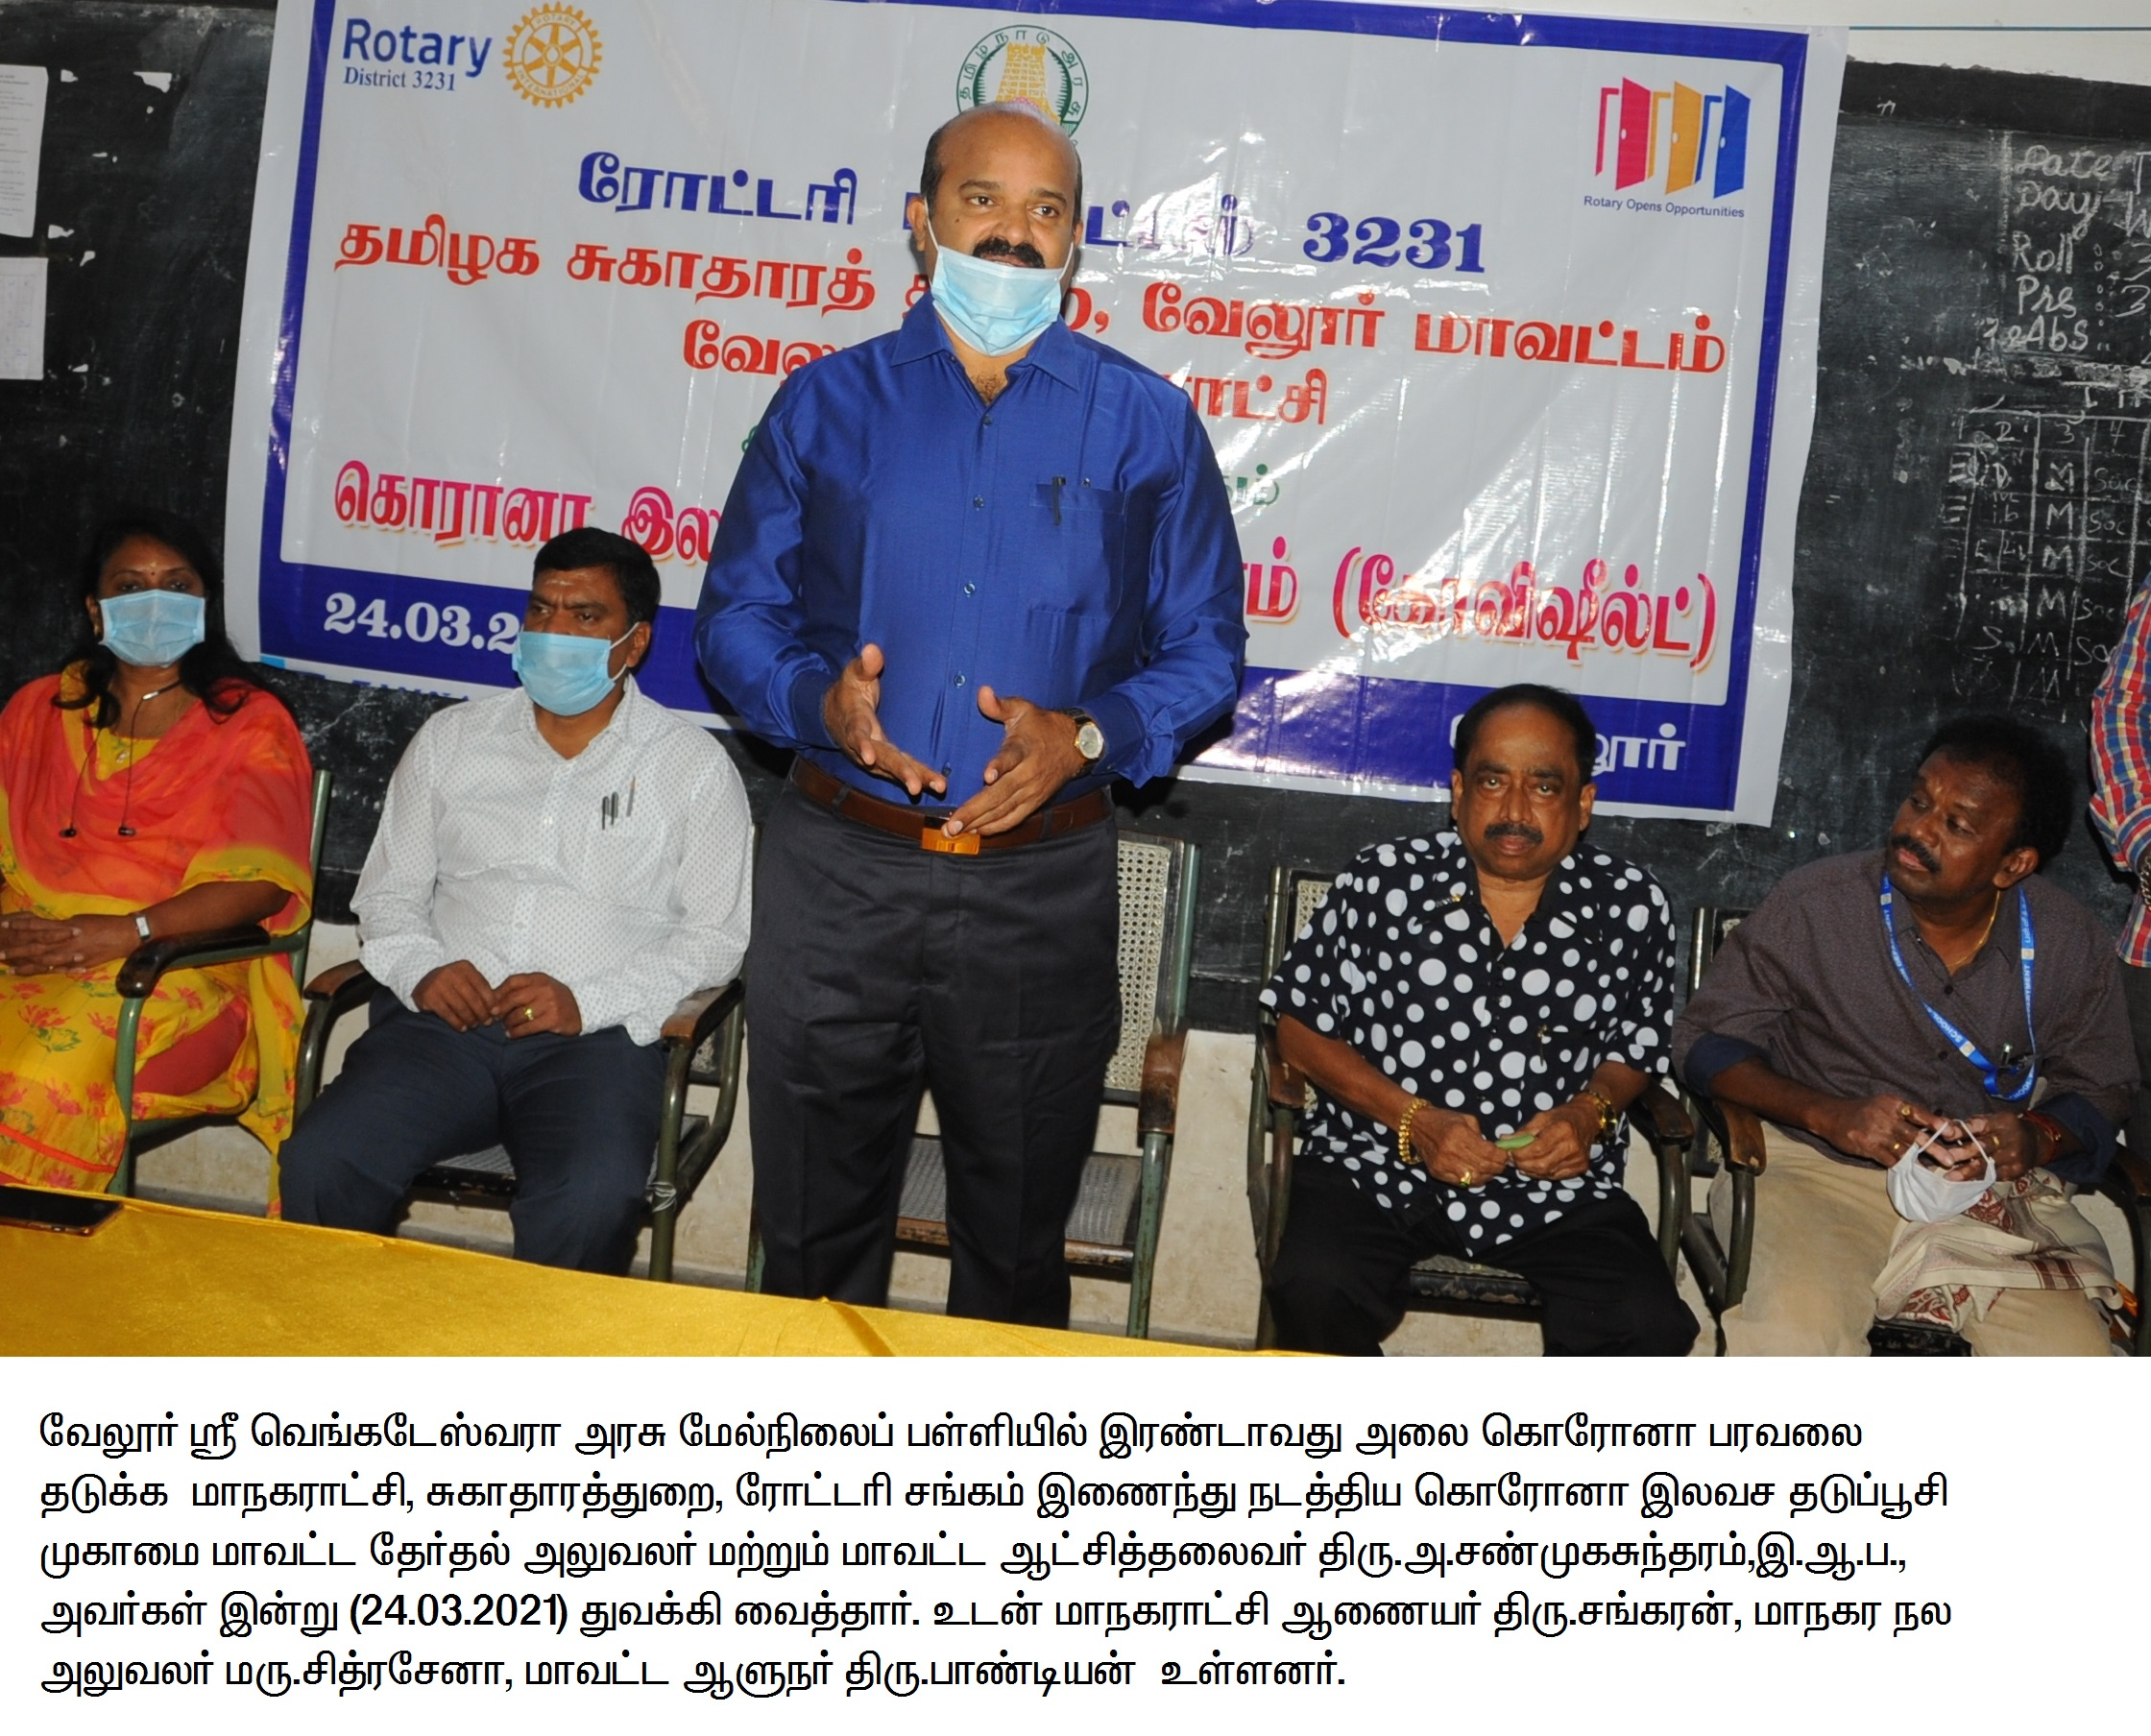 District Collector Inaugurated Free Corona vaccine Camp 24-03-2021